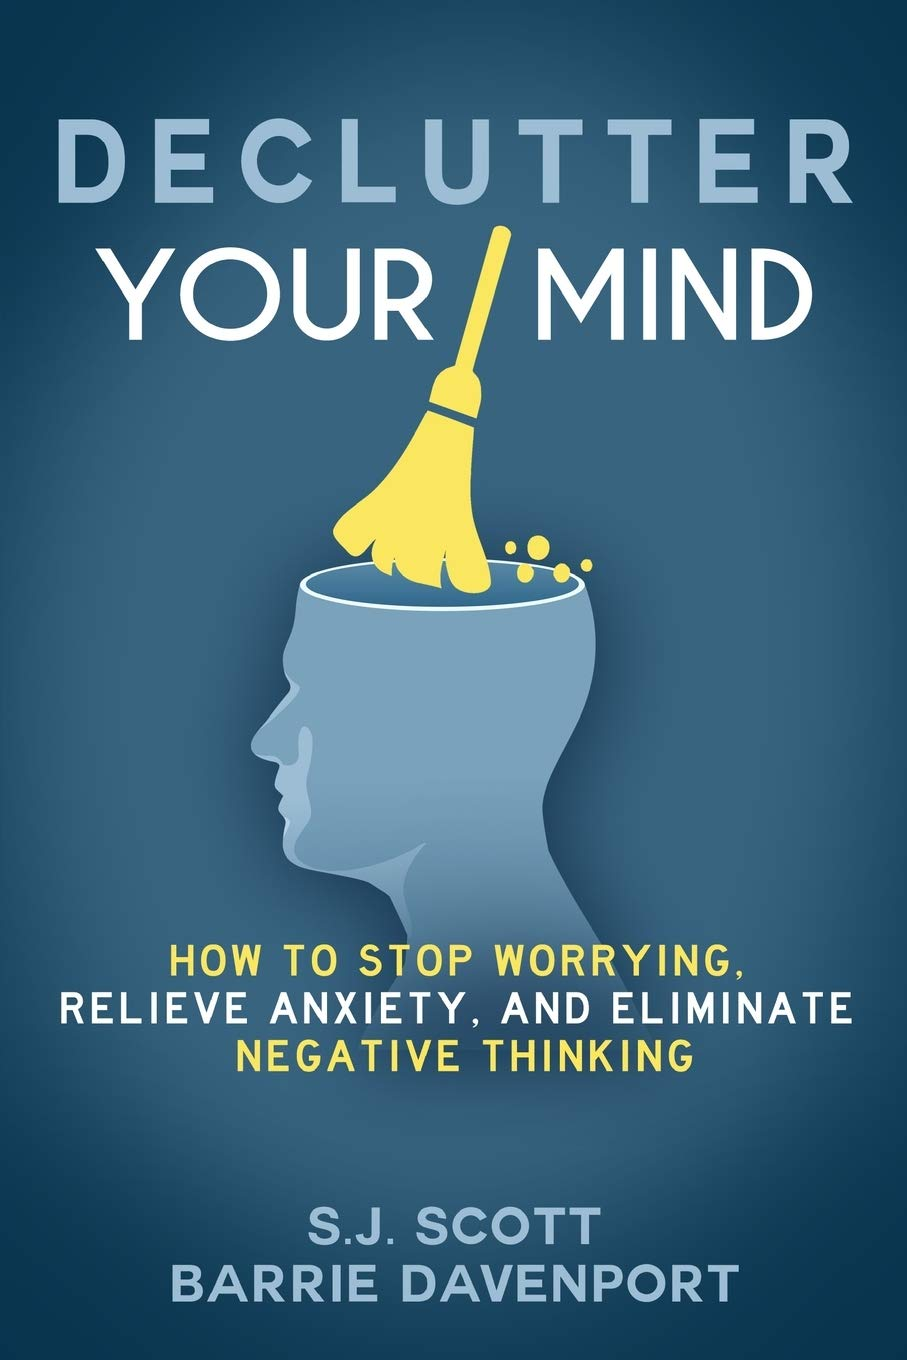 Declutter Your Mind one of self improvement books